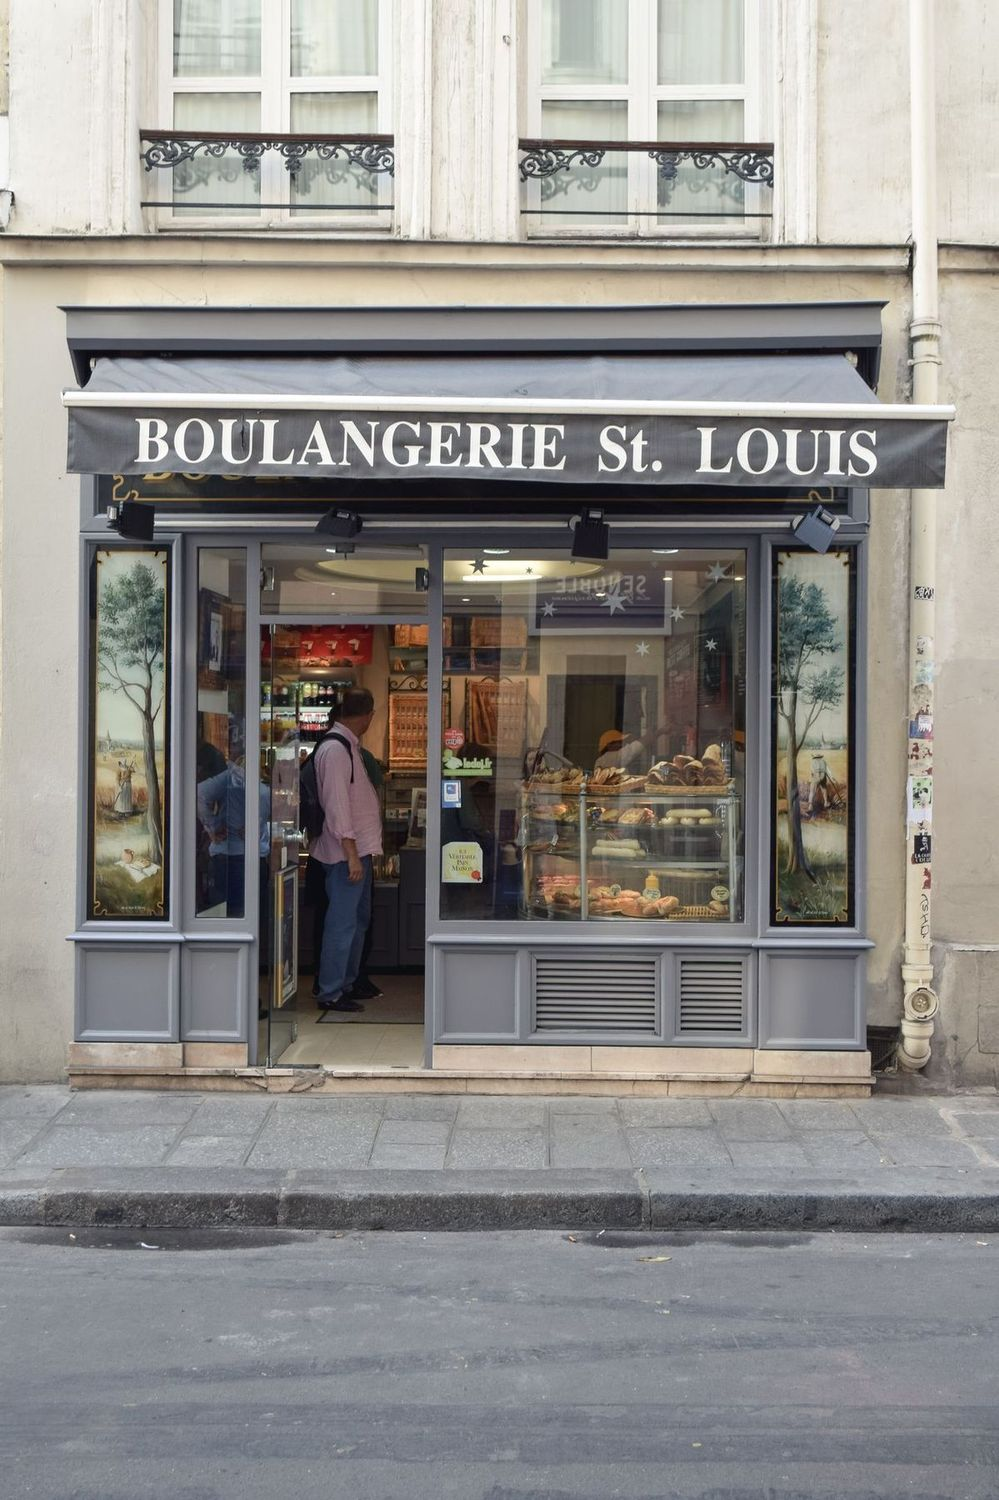 Boulangerie St. Louis, Île Saint-Louis, Paris